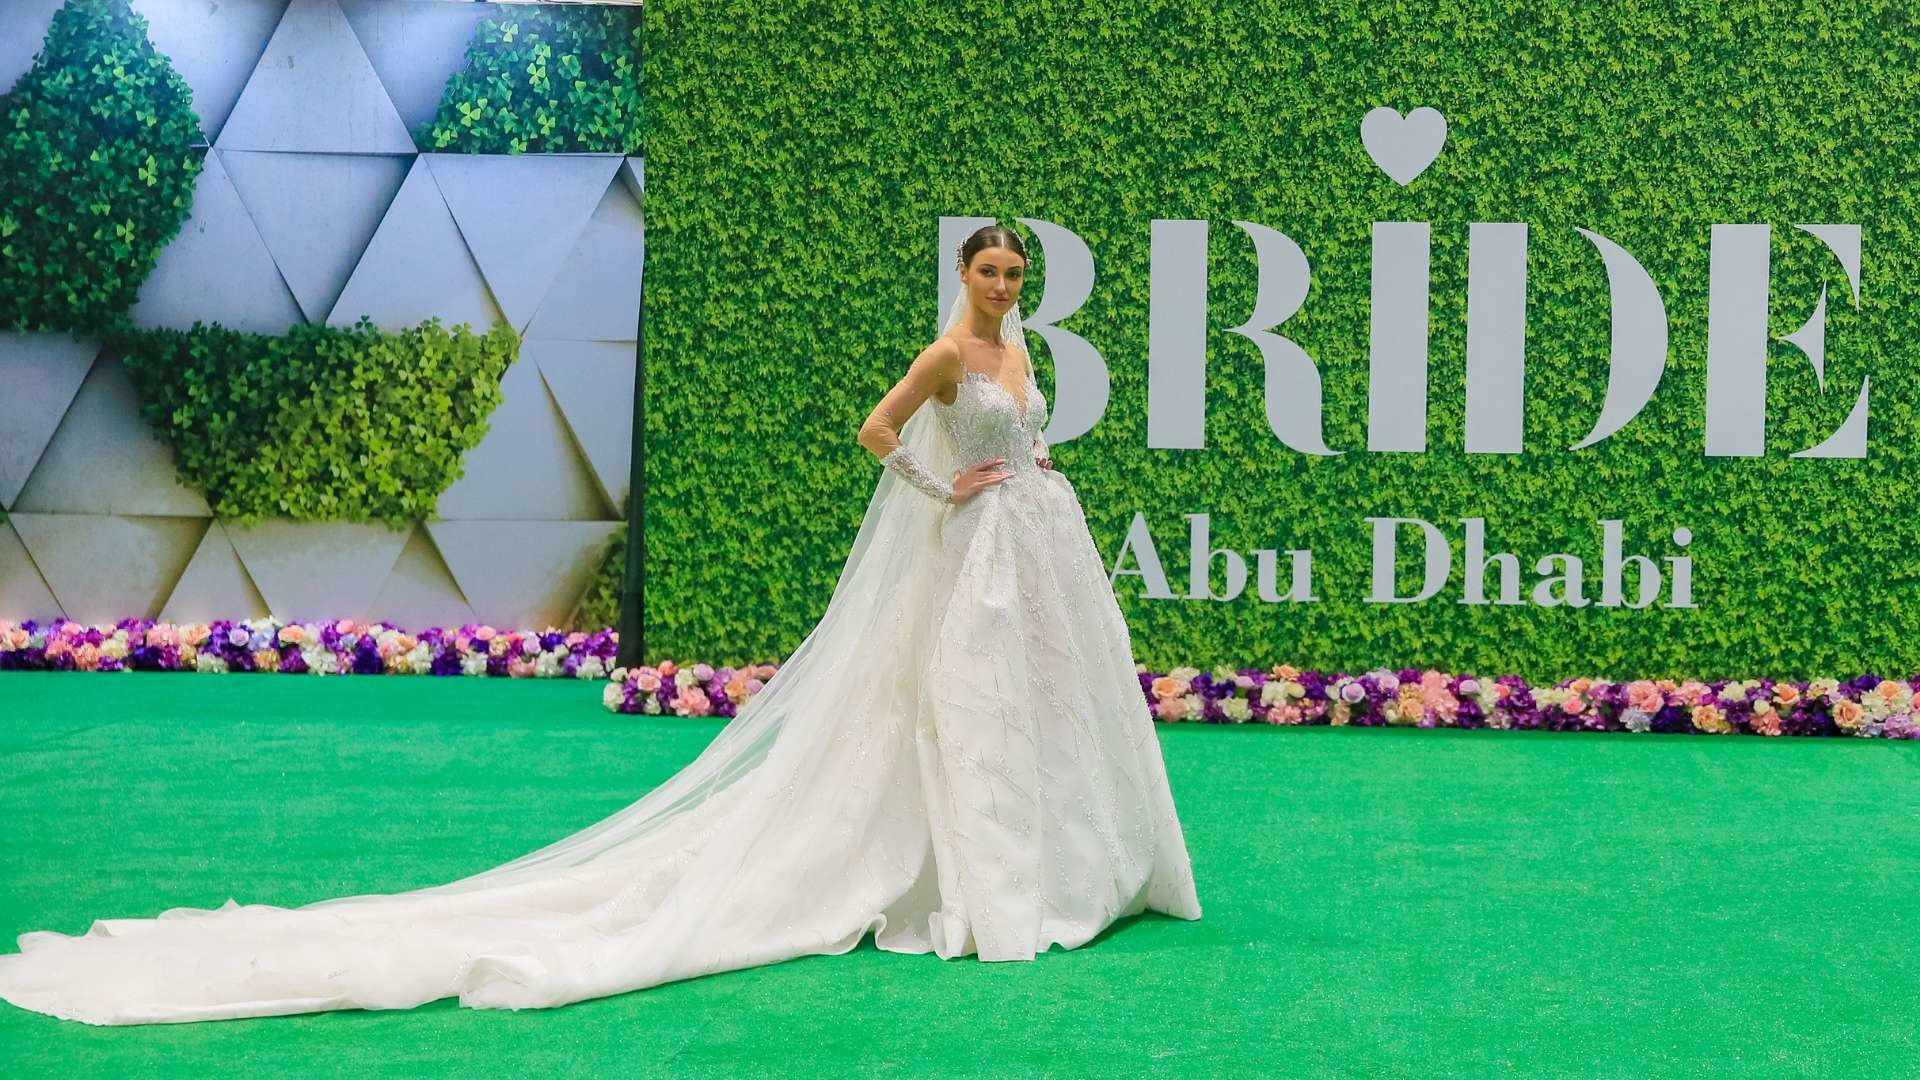 5 Highlights From Bride Abu Dhabi 2019 We're Still Swooning Over